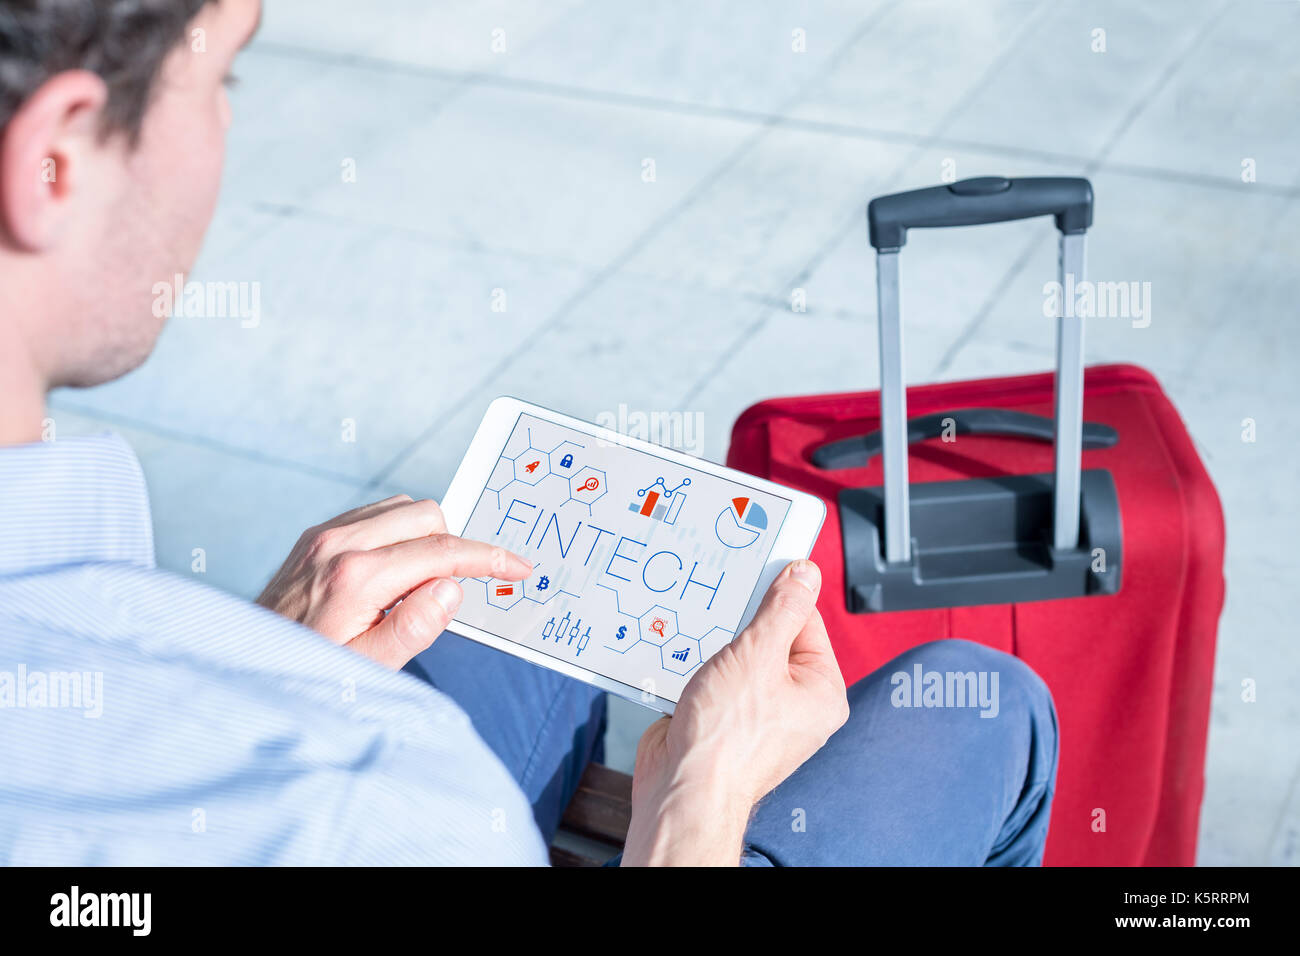 Businessman at airport using digital tablet computer with infographic concept of fintech (financial technology) on the screen, business travel - Stock Image